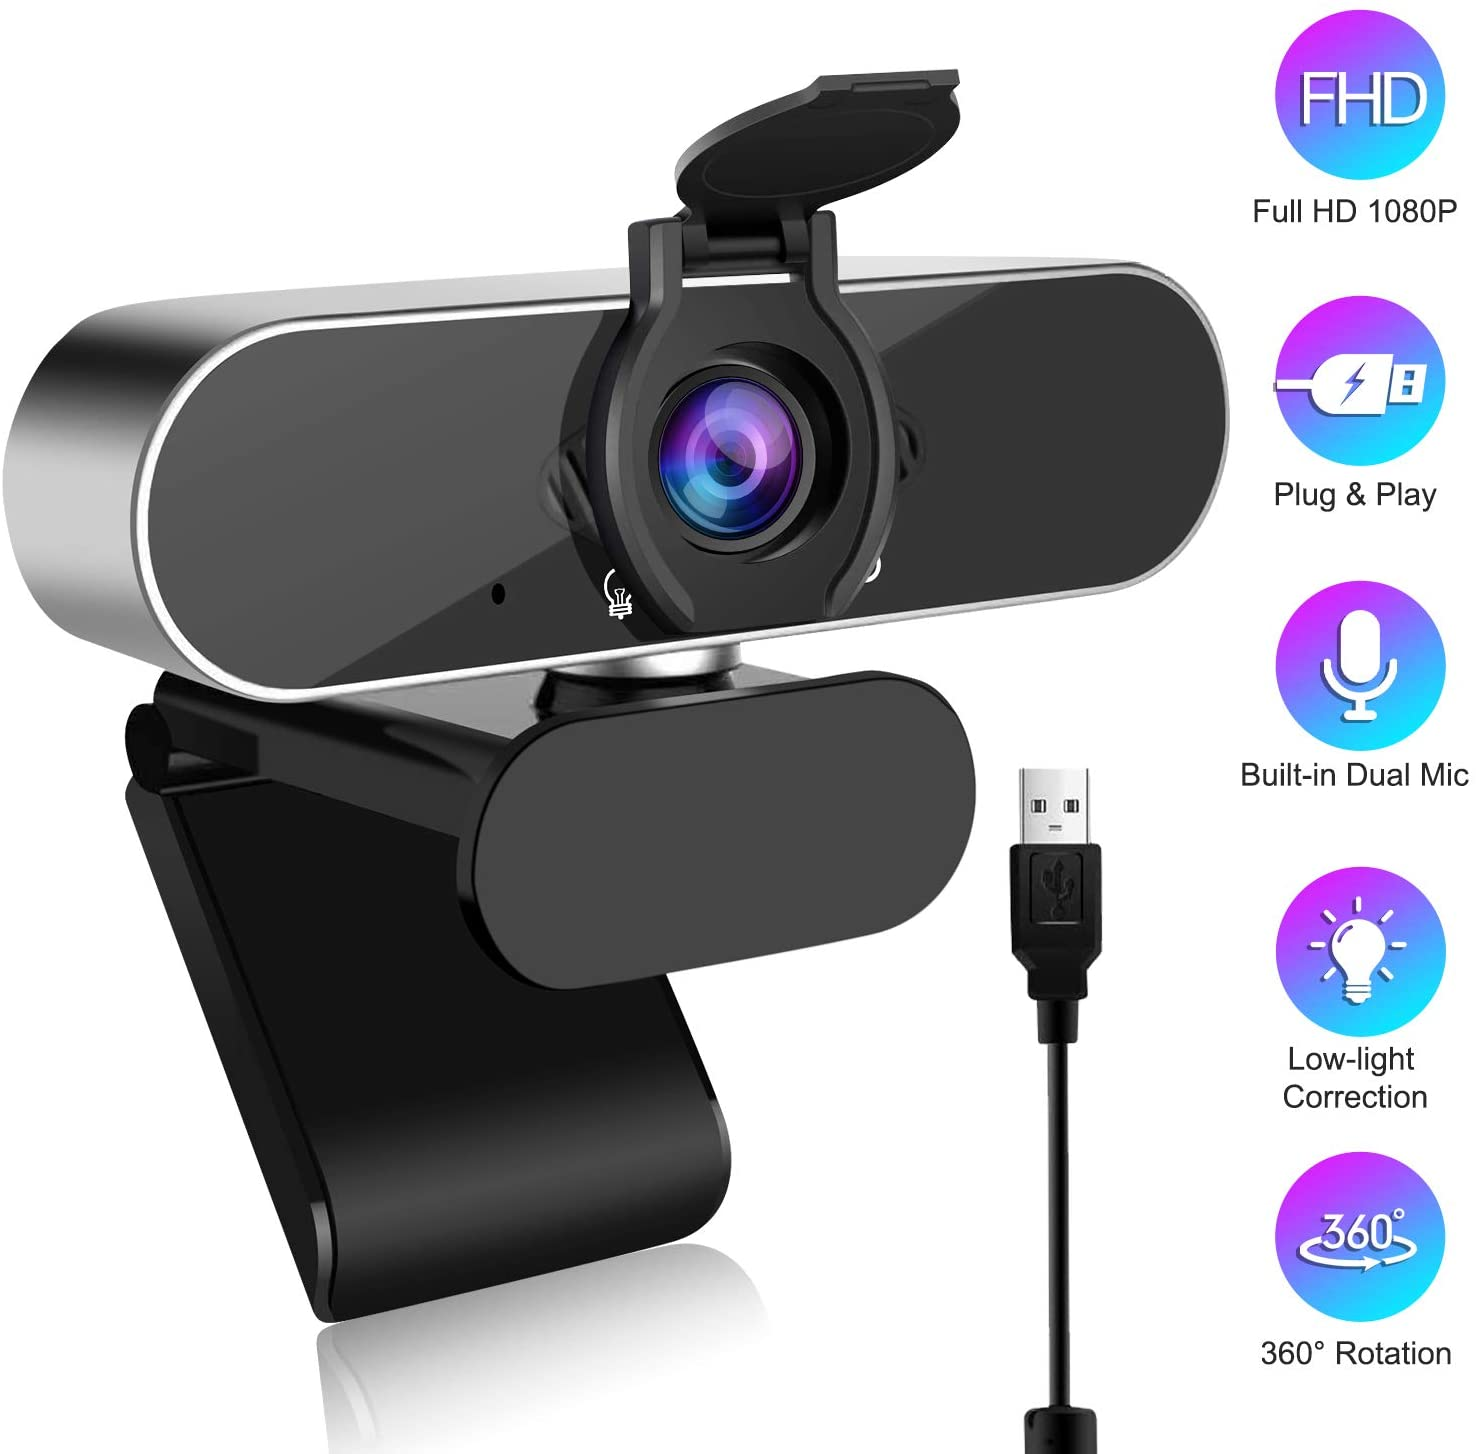 HD Webcam 1080P with Privacy Cover, Computer Webcam with Microphone Noise Reduction, USB Webcam for PC Desktop Laptop Video Calling Streaming Recording, 360 Degree Rotated Base Wide View